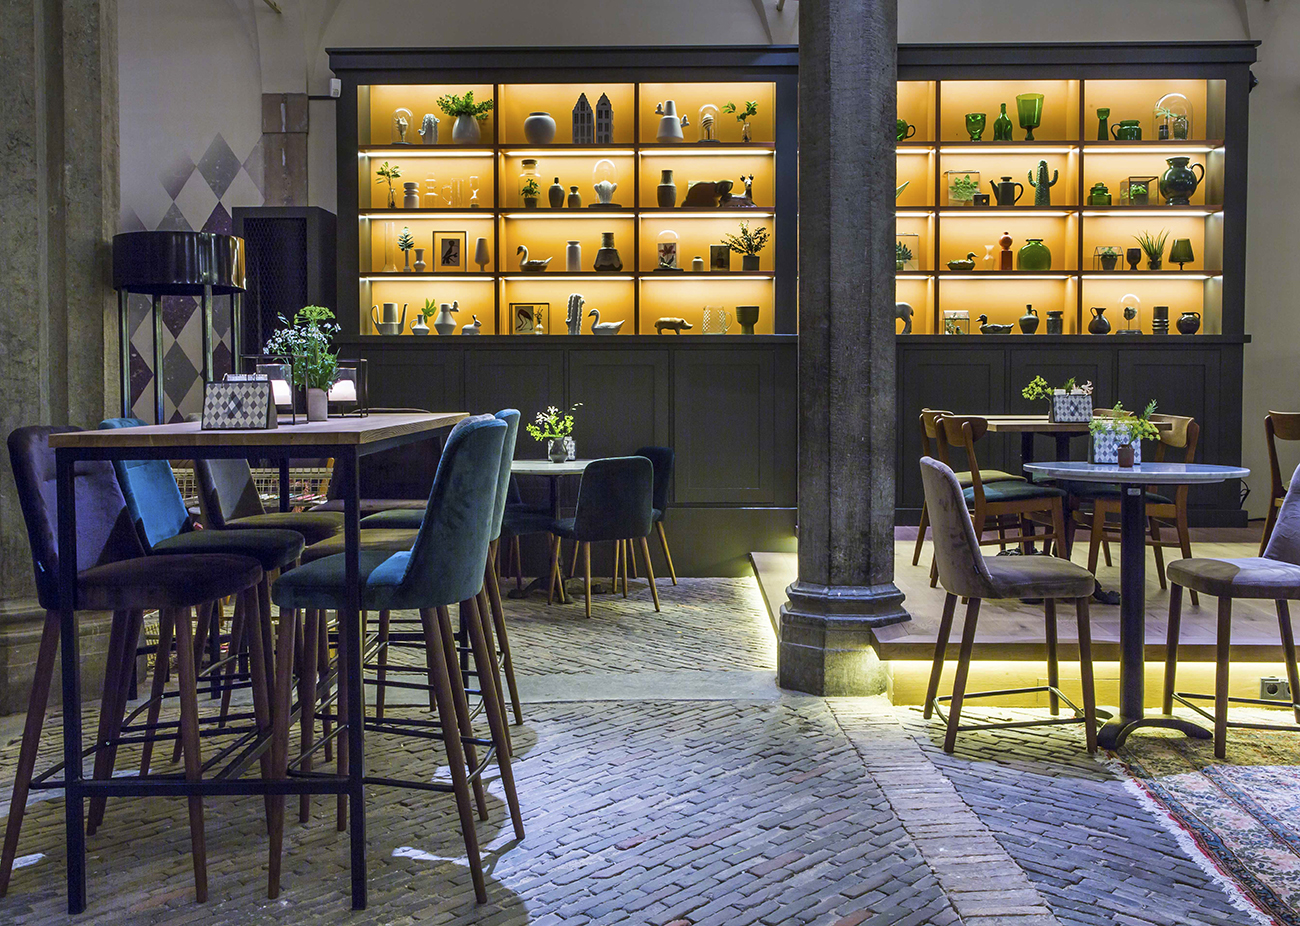 17th Century Merchant Mart Reinvented into Waag Restaurant and Cafe